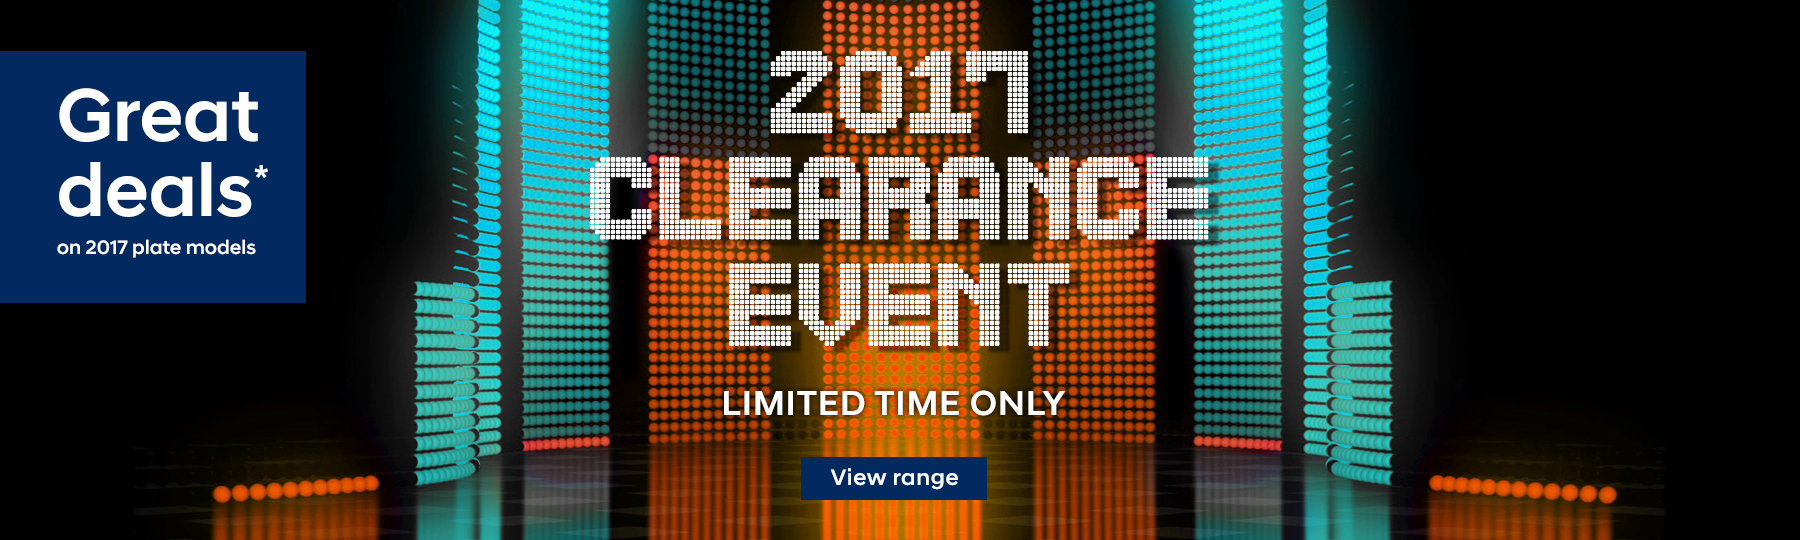 2017 Clearance Event - Huge factory bonuses on 2017 plate models